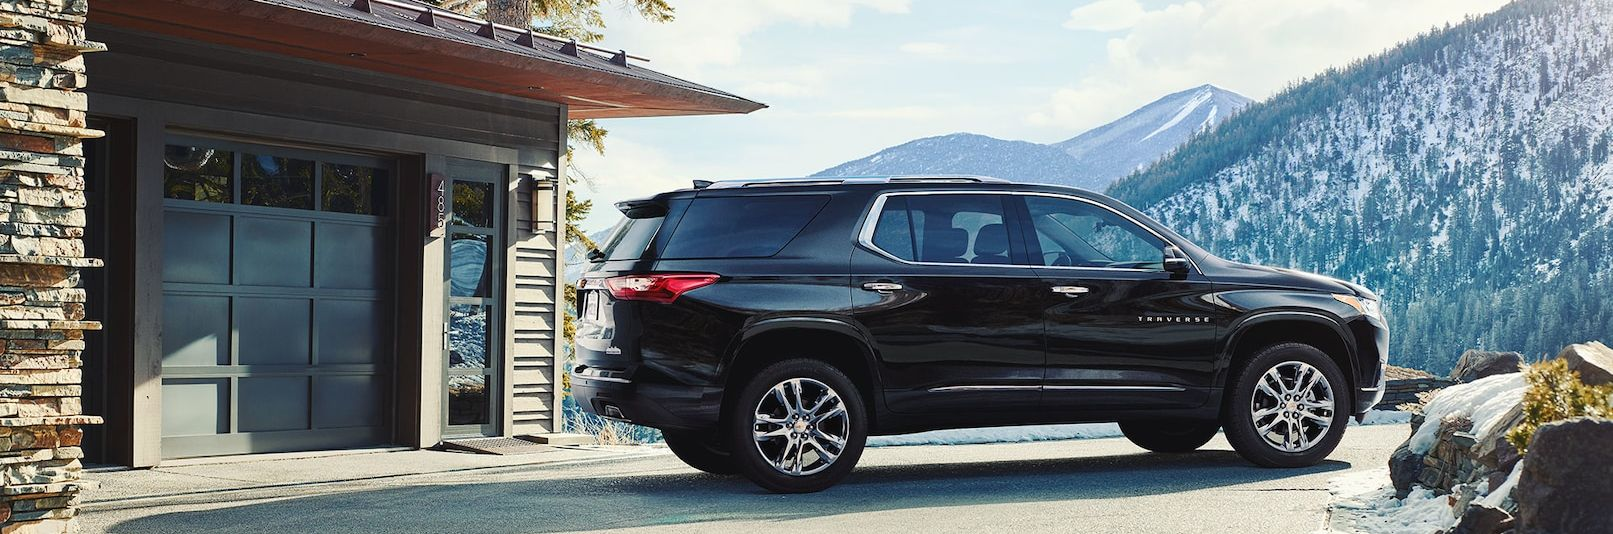 2020 Chevrolet Traverse Release Date And Price >> 2020 Chevrolet Traverse Financing Near Aberdeen Sd